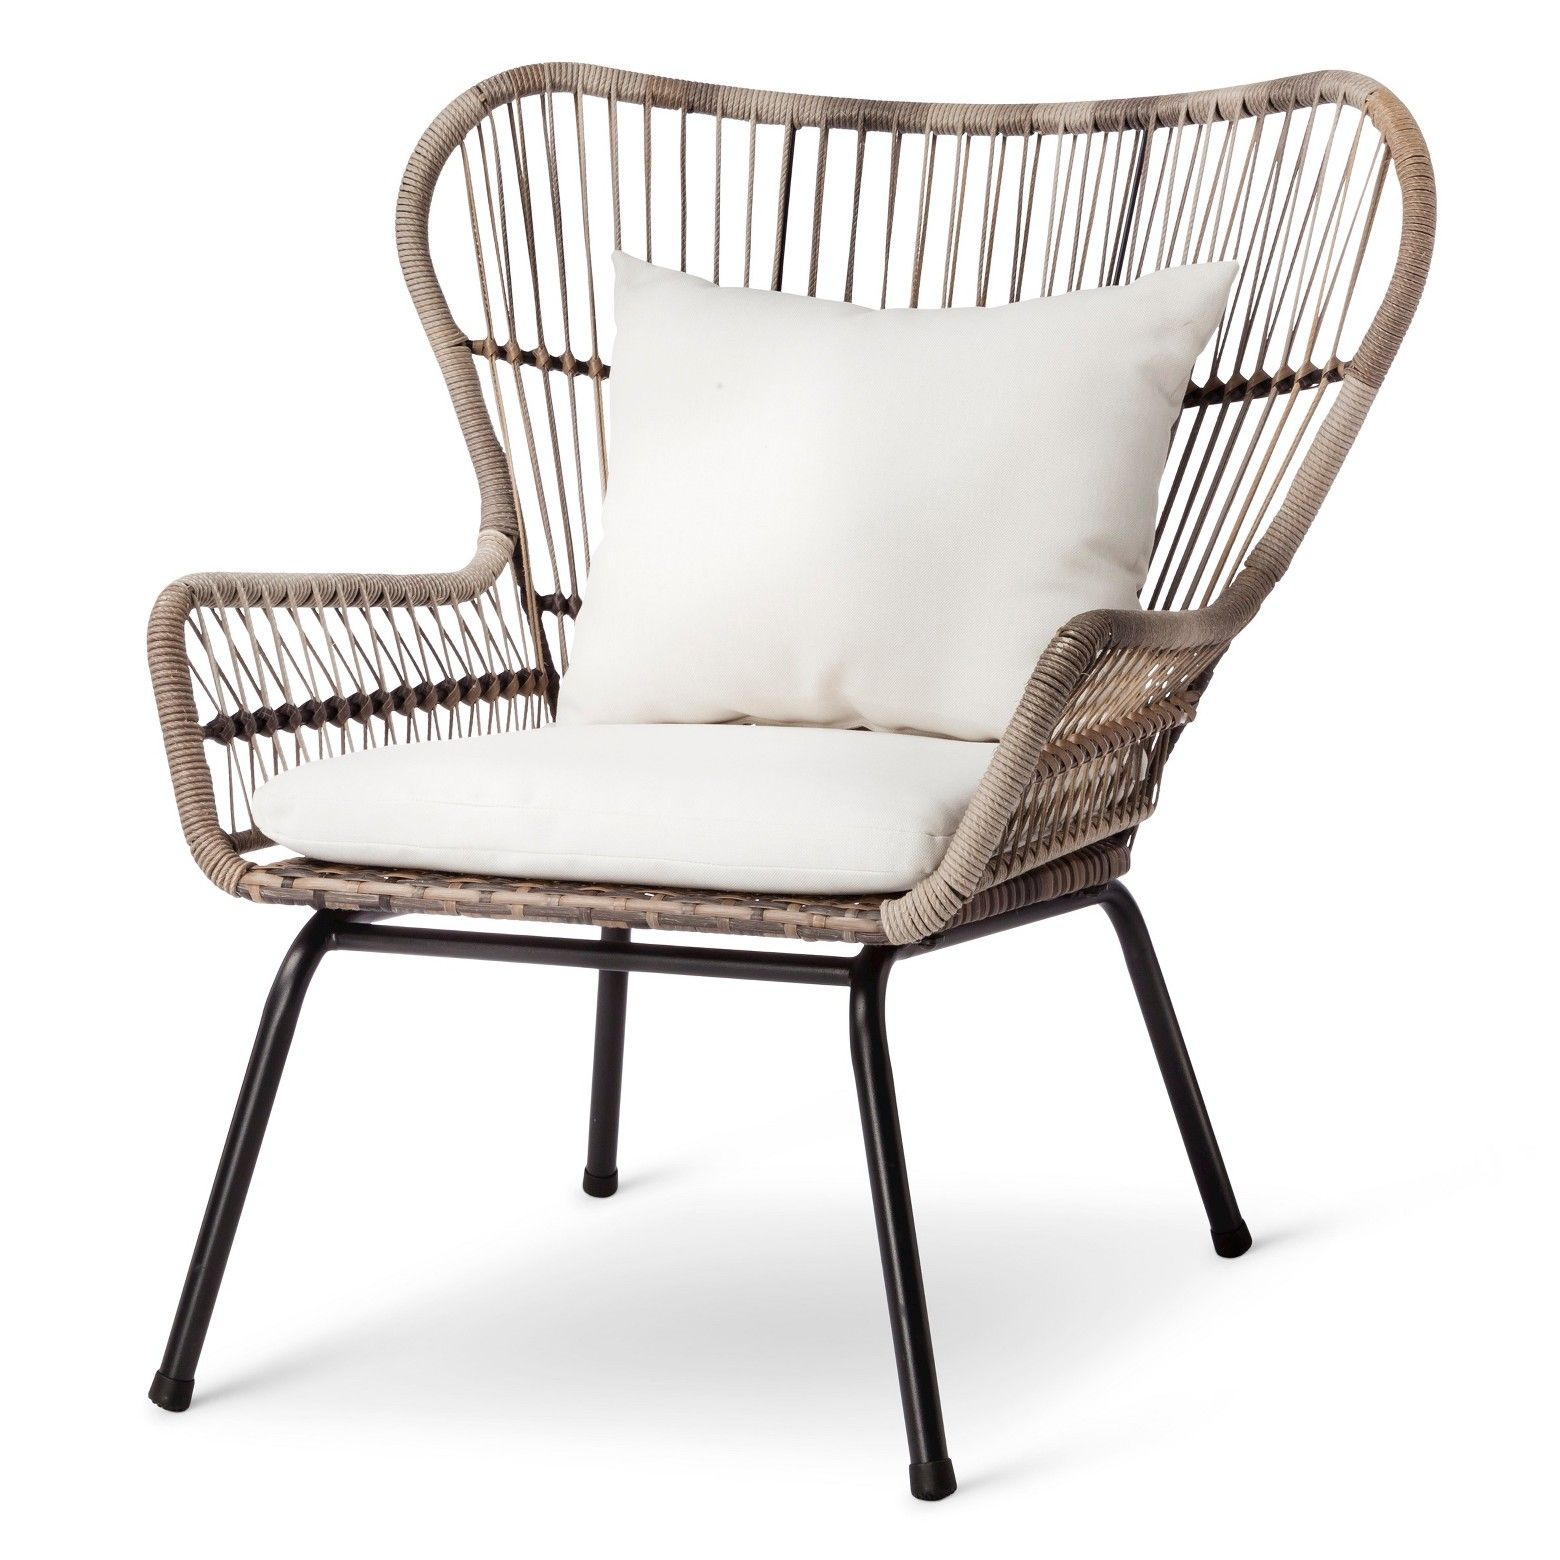 Best Latino Rattan Patio Char Target Resin Patio Furniture 400 x 300